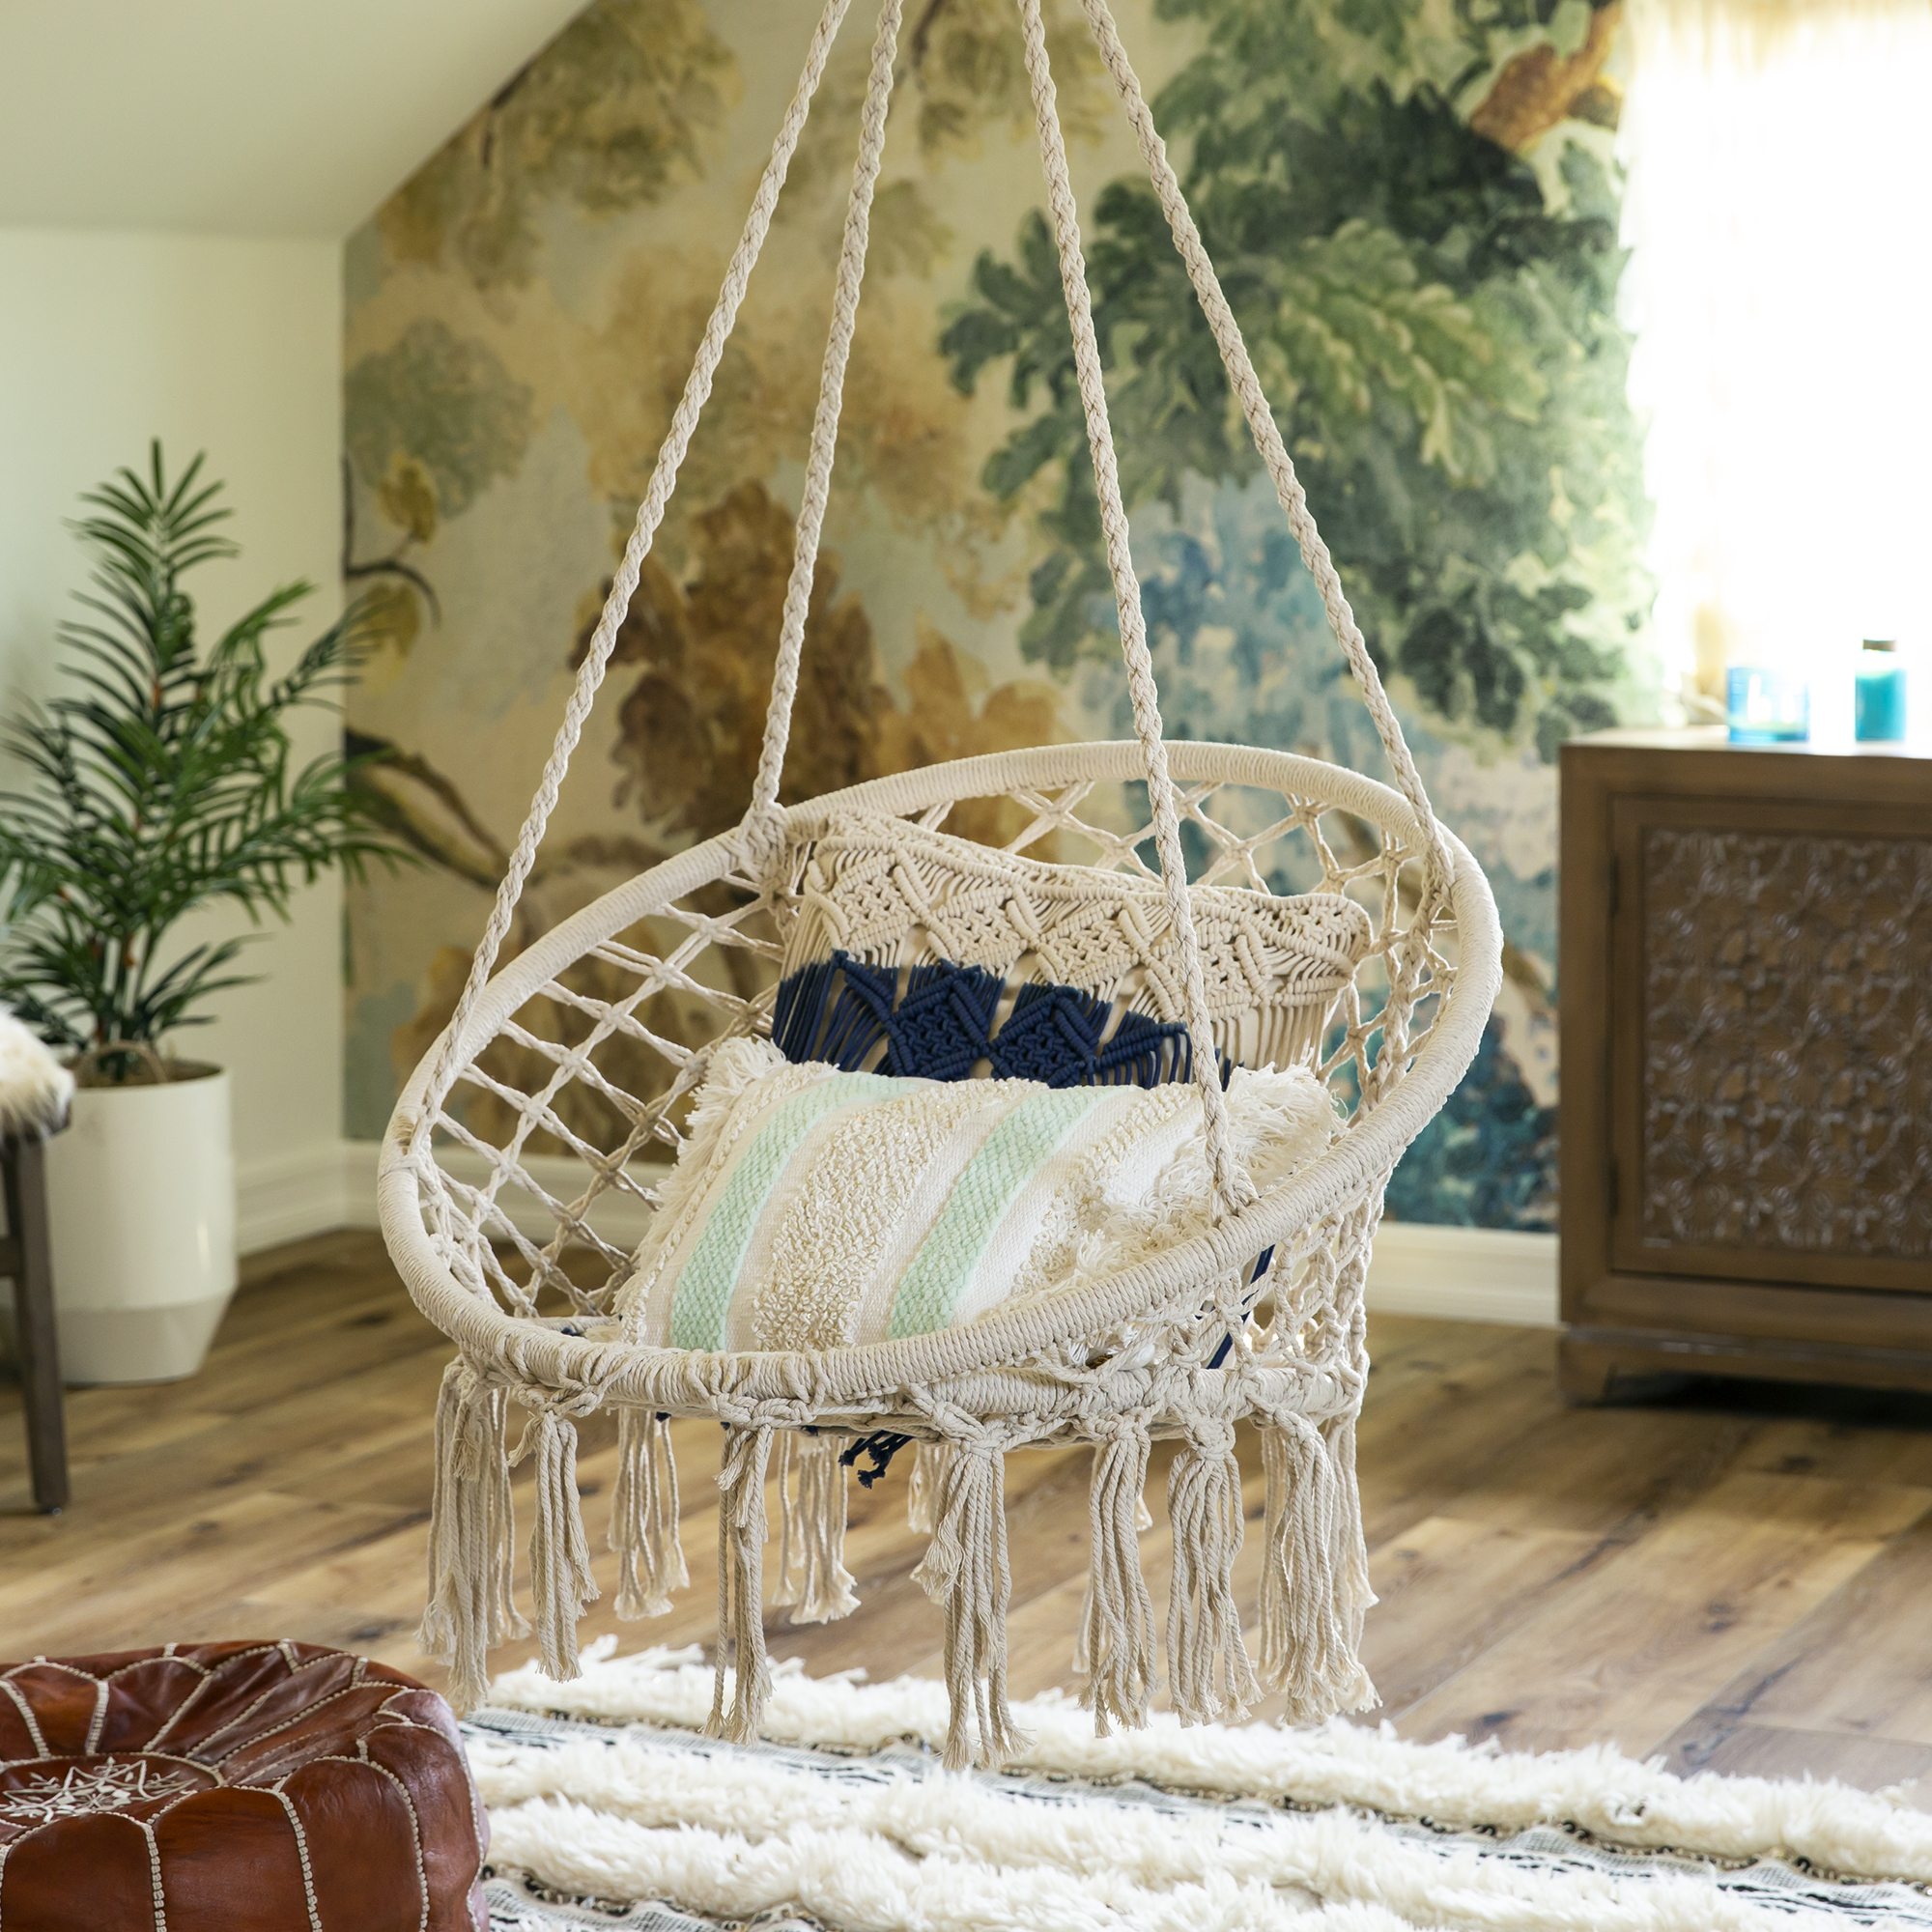 BCP-Handwoven-Cotton-Macrame-Hammock-Hanging-Chair-Swing-w-Backrest thumbnail 9